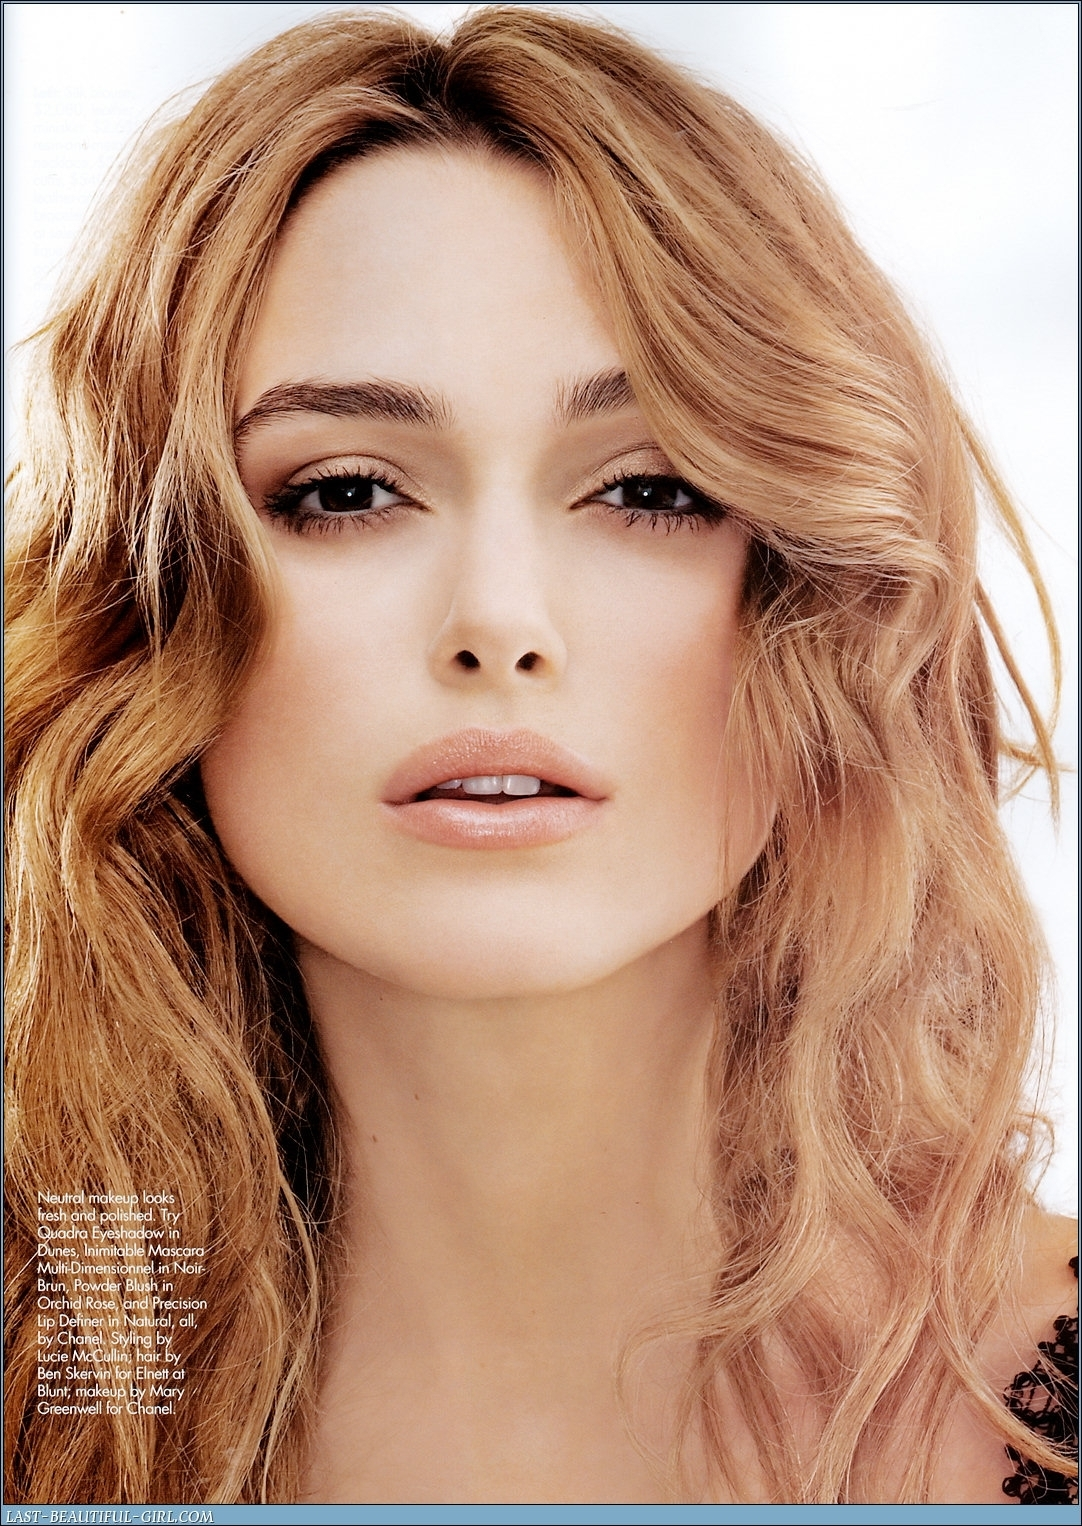 Keira Knightley images Keira (HQ) HD wallpaper and background photos ... Keira Knightley